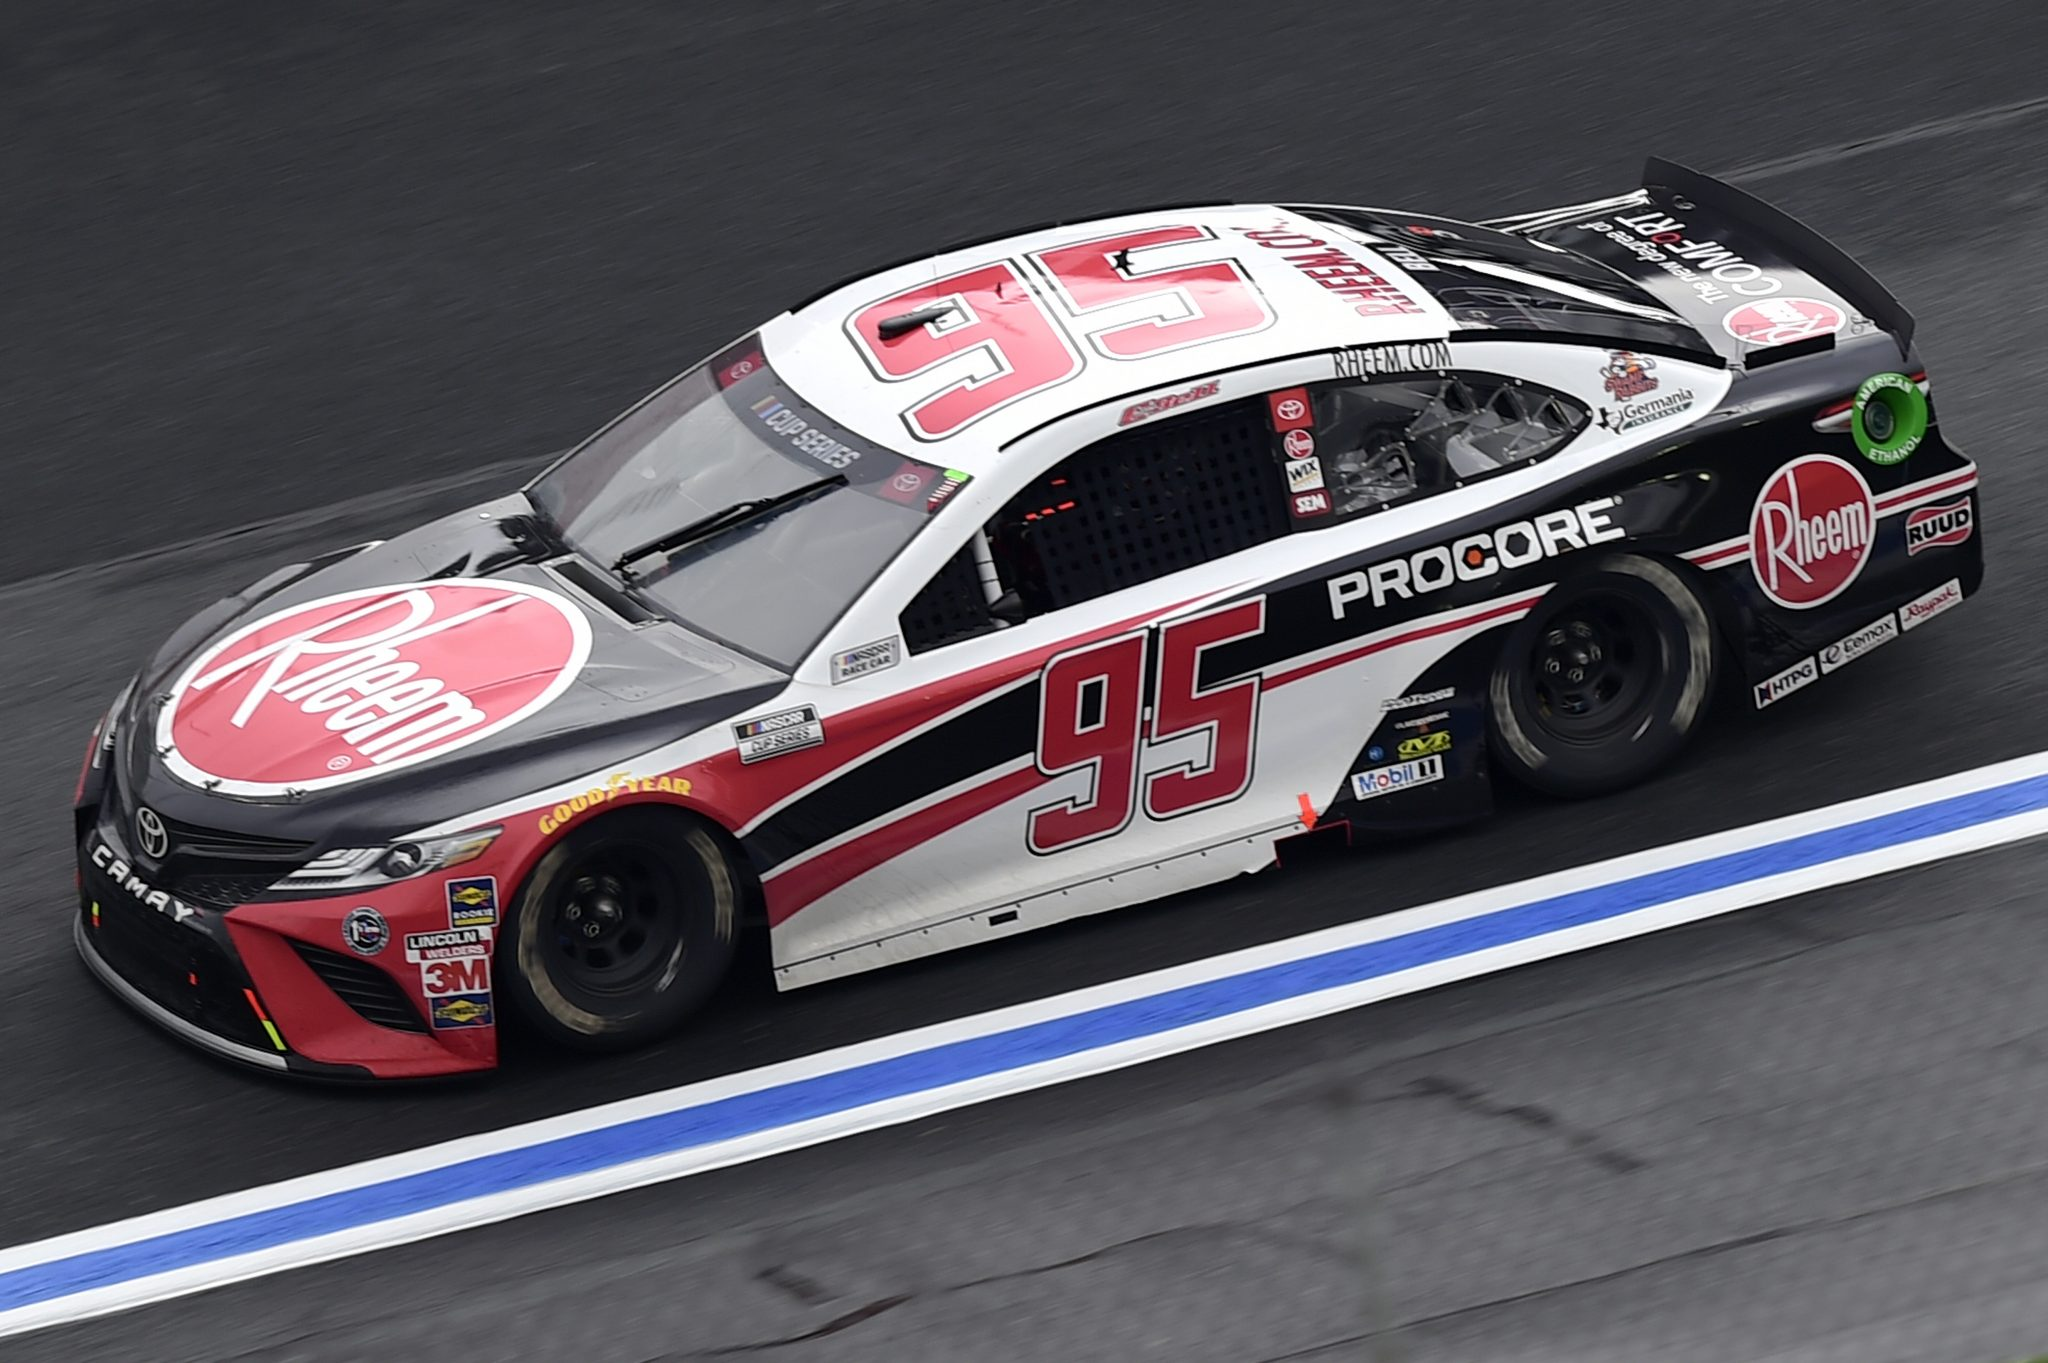 CONCORD, NORTH CAROLINA - OCTOBER 11: Christopher Bell, driver of the #95 Rheem Toyota, drives during the NASCAR Cup Series Bank of America ROVAL 400 at Charlotte Motor Speedway on October 11, 2020 in Concord, North Carolina. (Photo by Jared C. Tilton/Getty Images) | Getty Images